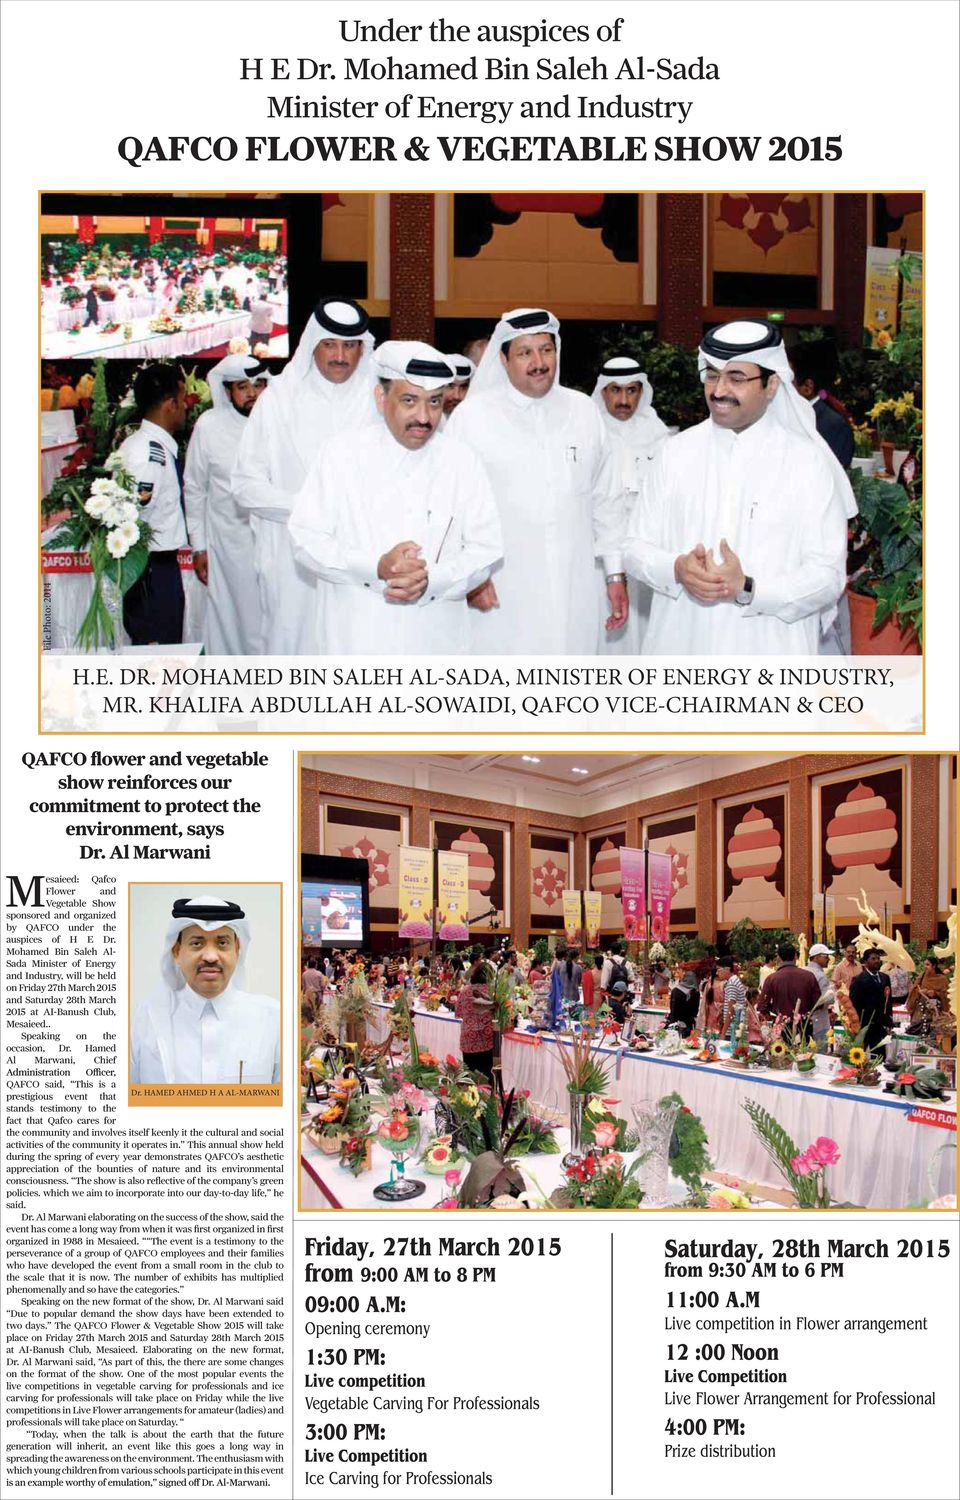 Dr. Al Marwani Mesaieed: Qafco Flower and Vegetable Show sponsored and organized by QAFCO under the auspices of H E Dr.